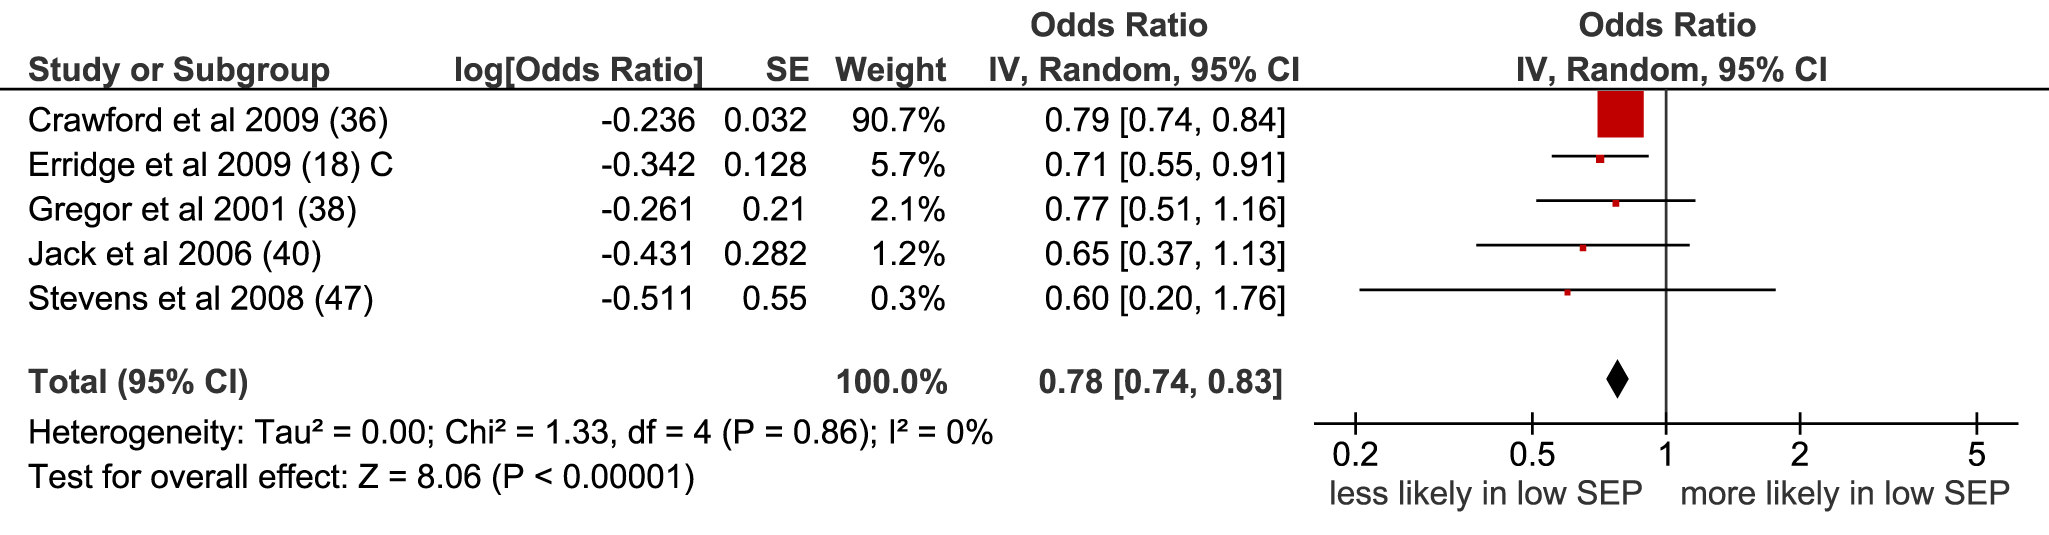 Meta-analysis of odds of receipt of unspecified treatment in low versus high SEP.